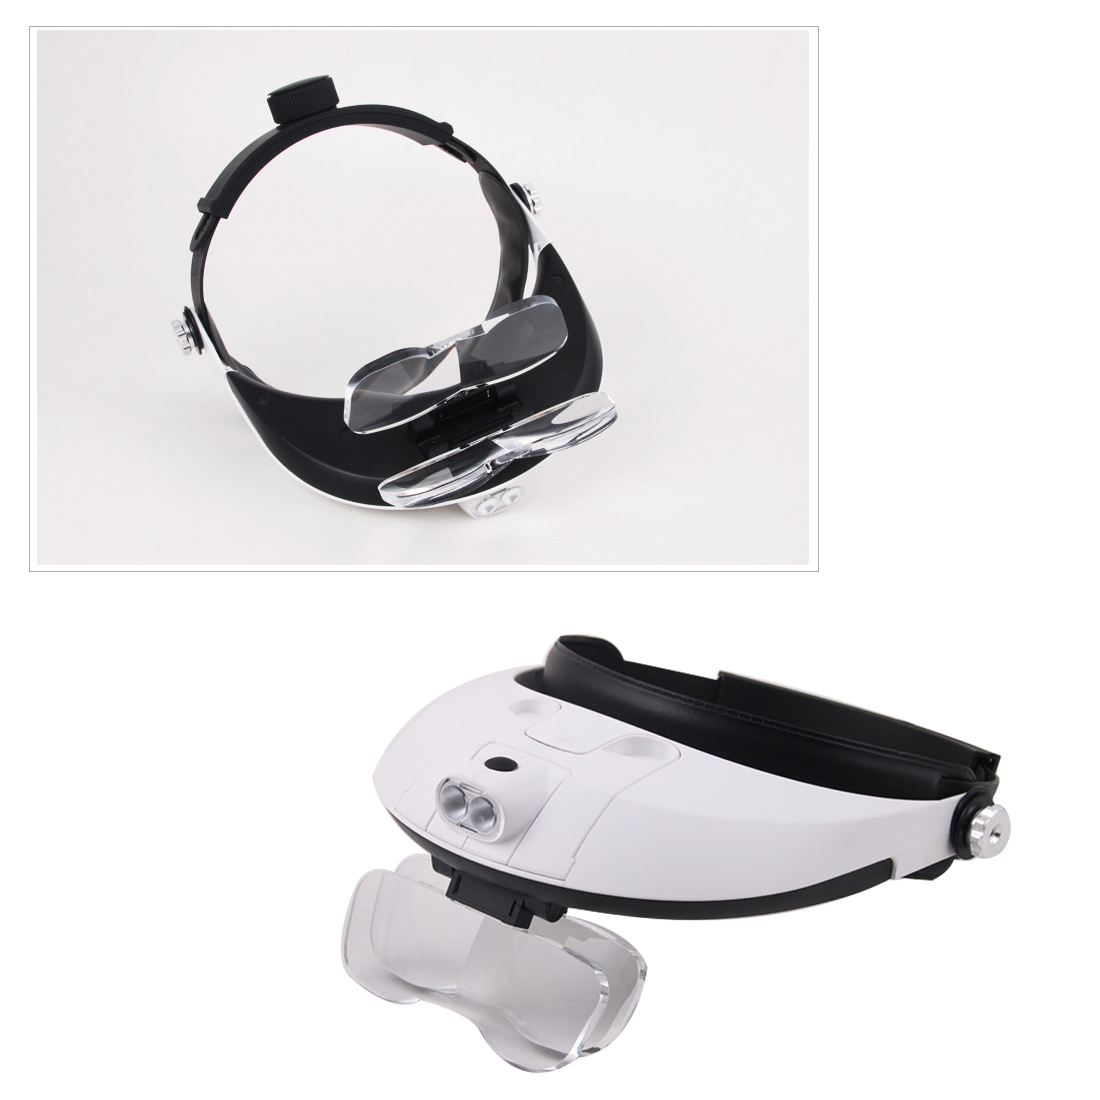 Jewelry Repair Reading Magnifying Glass Dental Loupes 2.5x 1.0x 1.5x 2.0x Headband 5Lens Binoculars Third Hand Magnifier Light